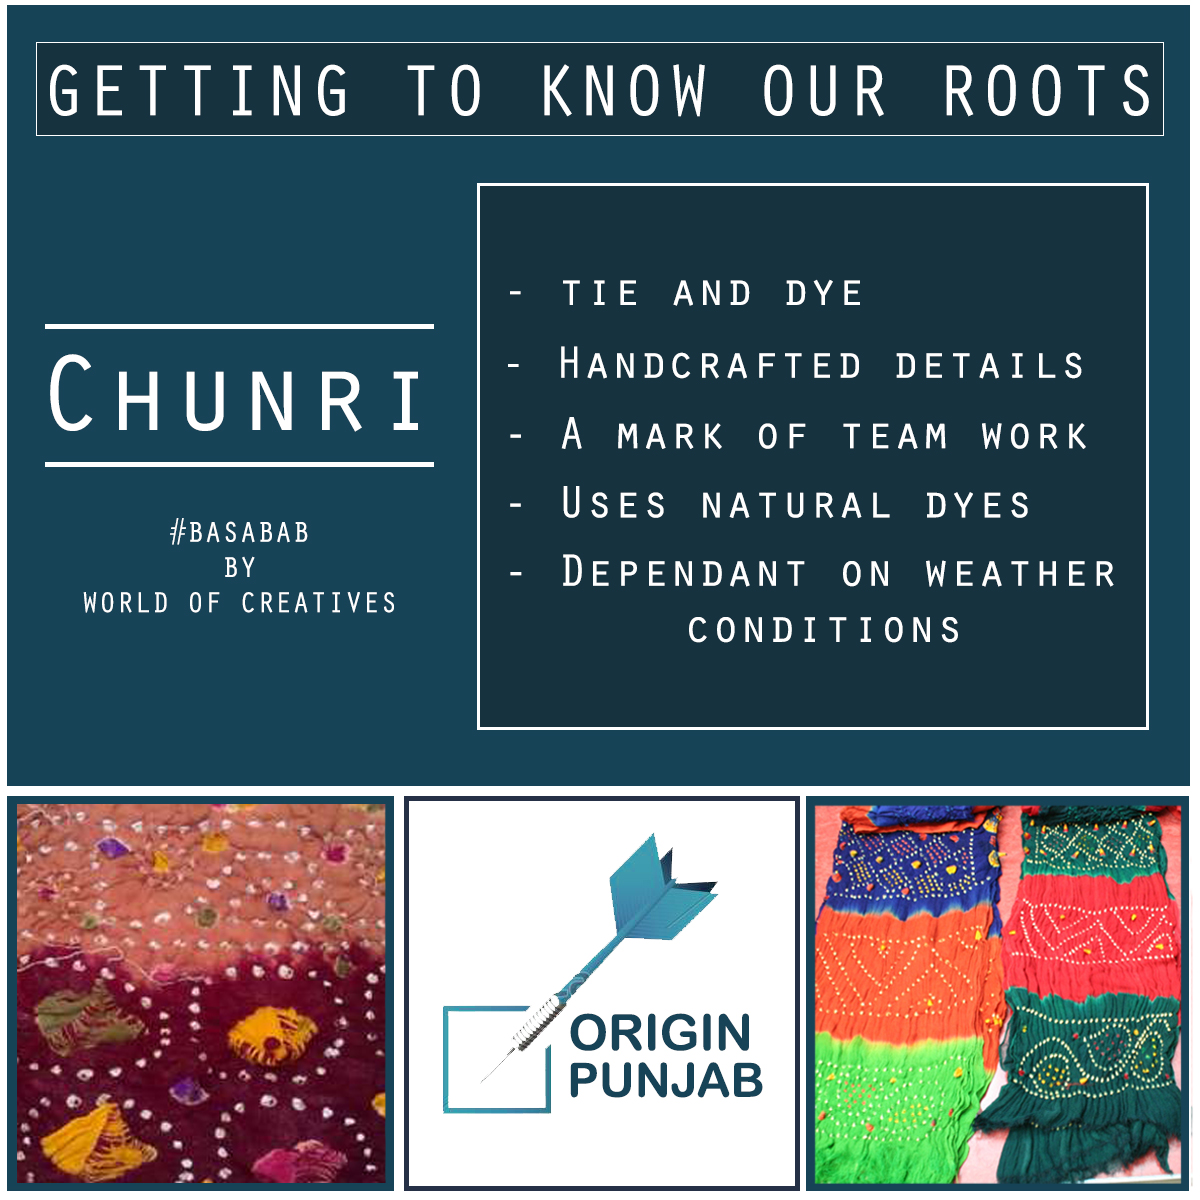 Chunri: The Hues of Hard work